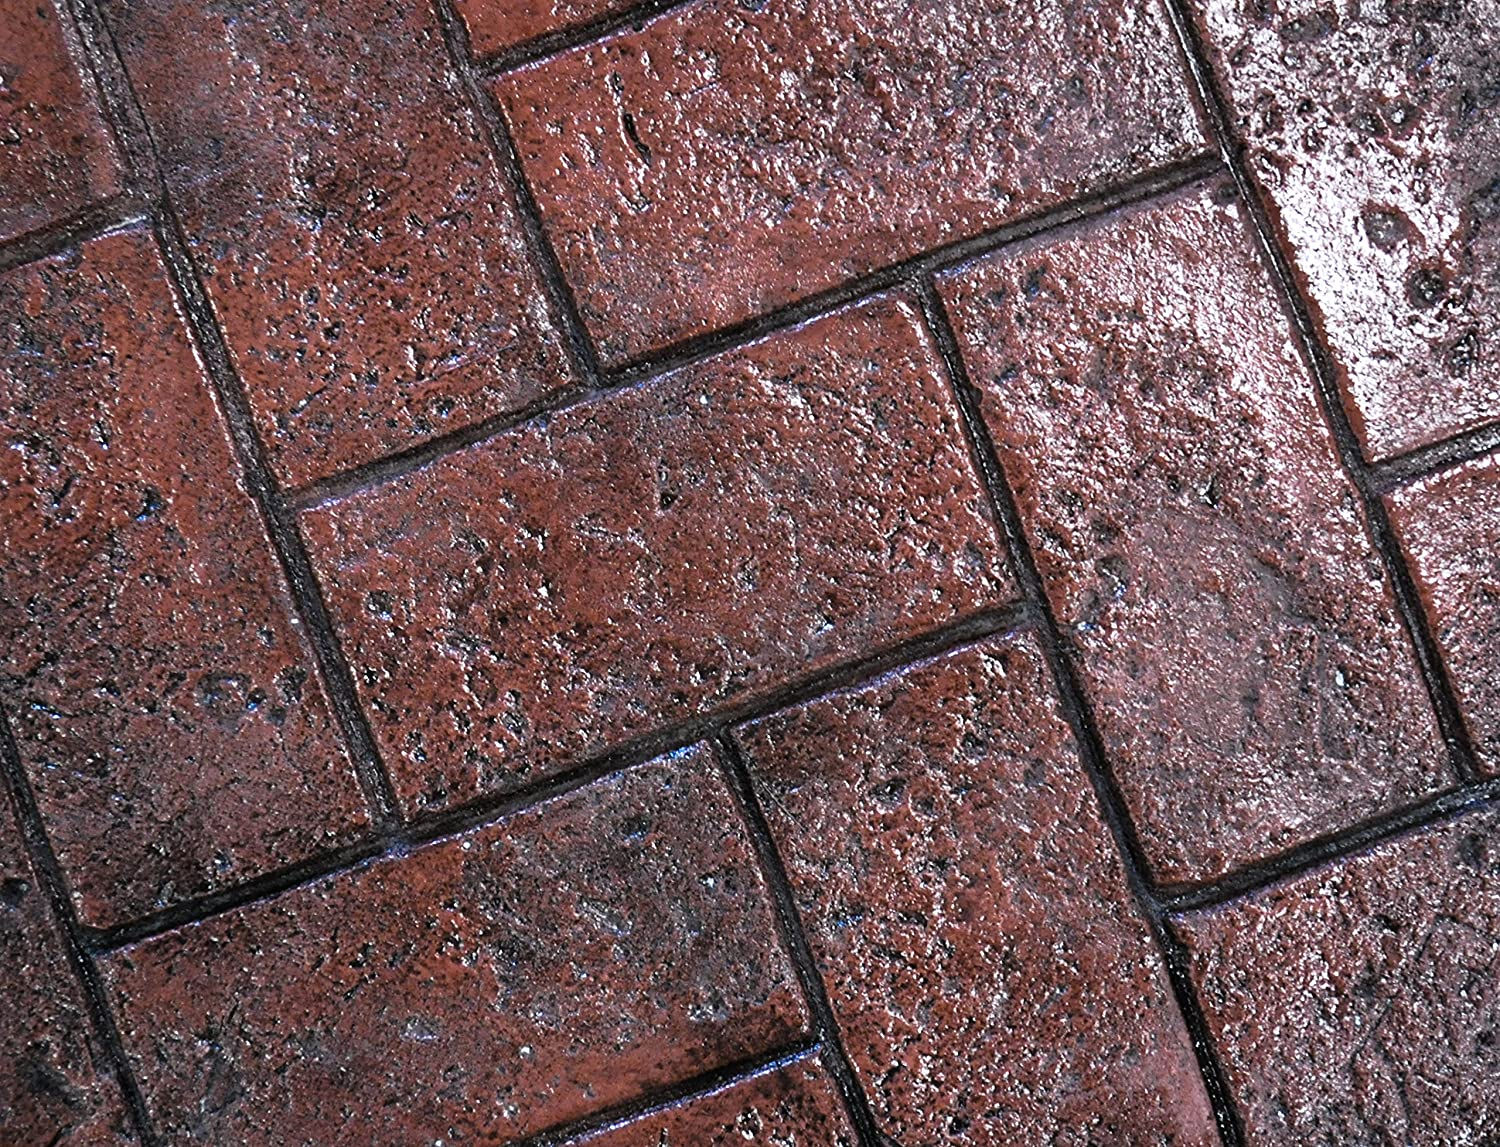 Yellow, Rigid Olde Town Herringbone Brick Concrete Stamp Single by Walttools Classic Woven Paver Pattern Decorative Realistic Detail Sturdy Polyurethane Texturing Mat